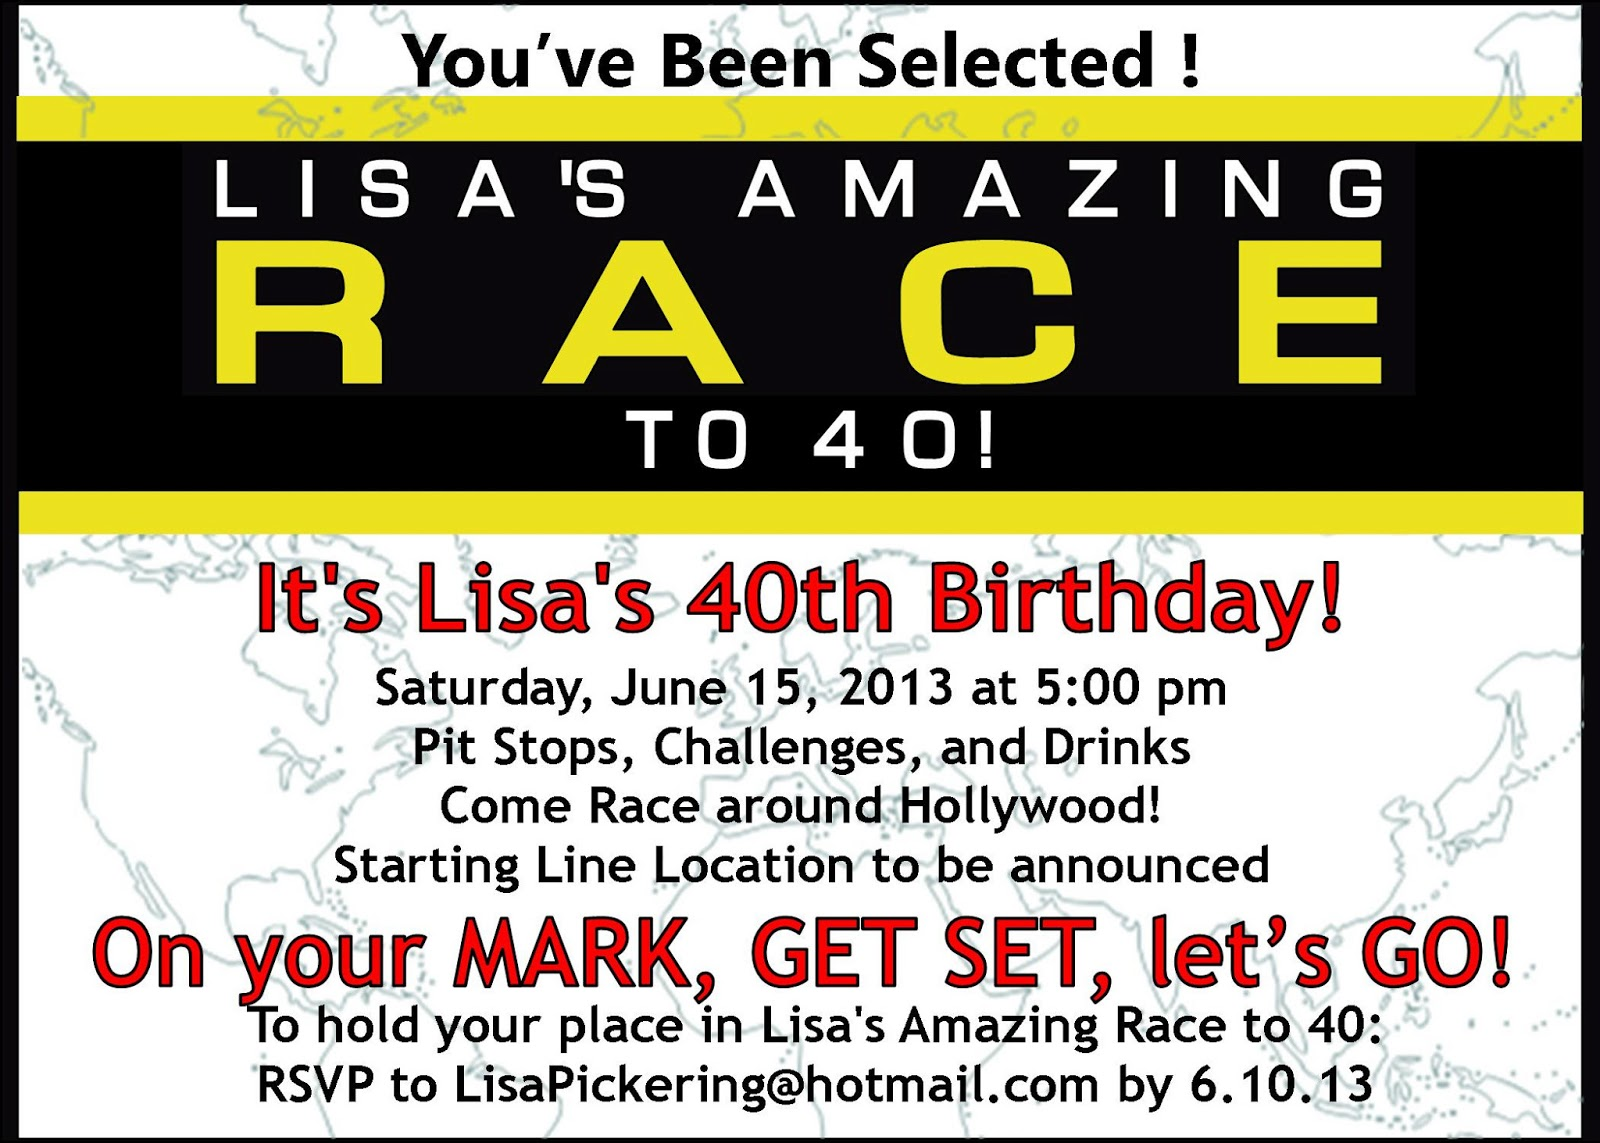 Amazing race templates printable bing images for Amazing race birthday party templates